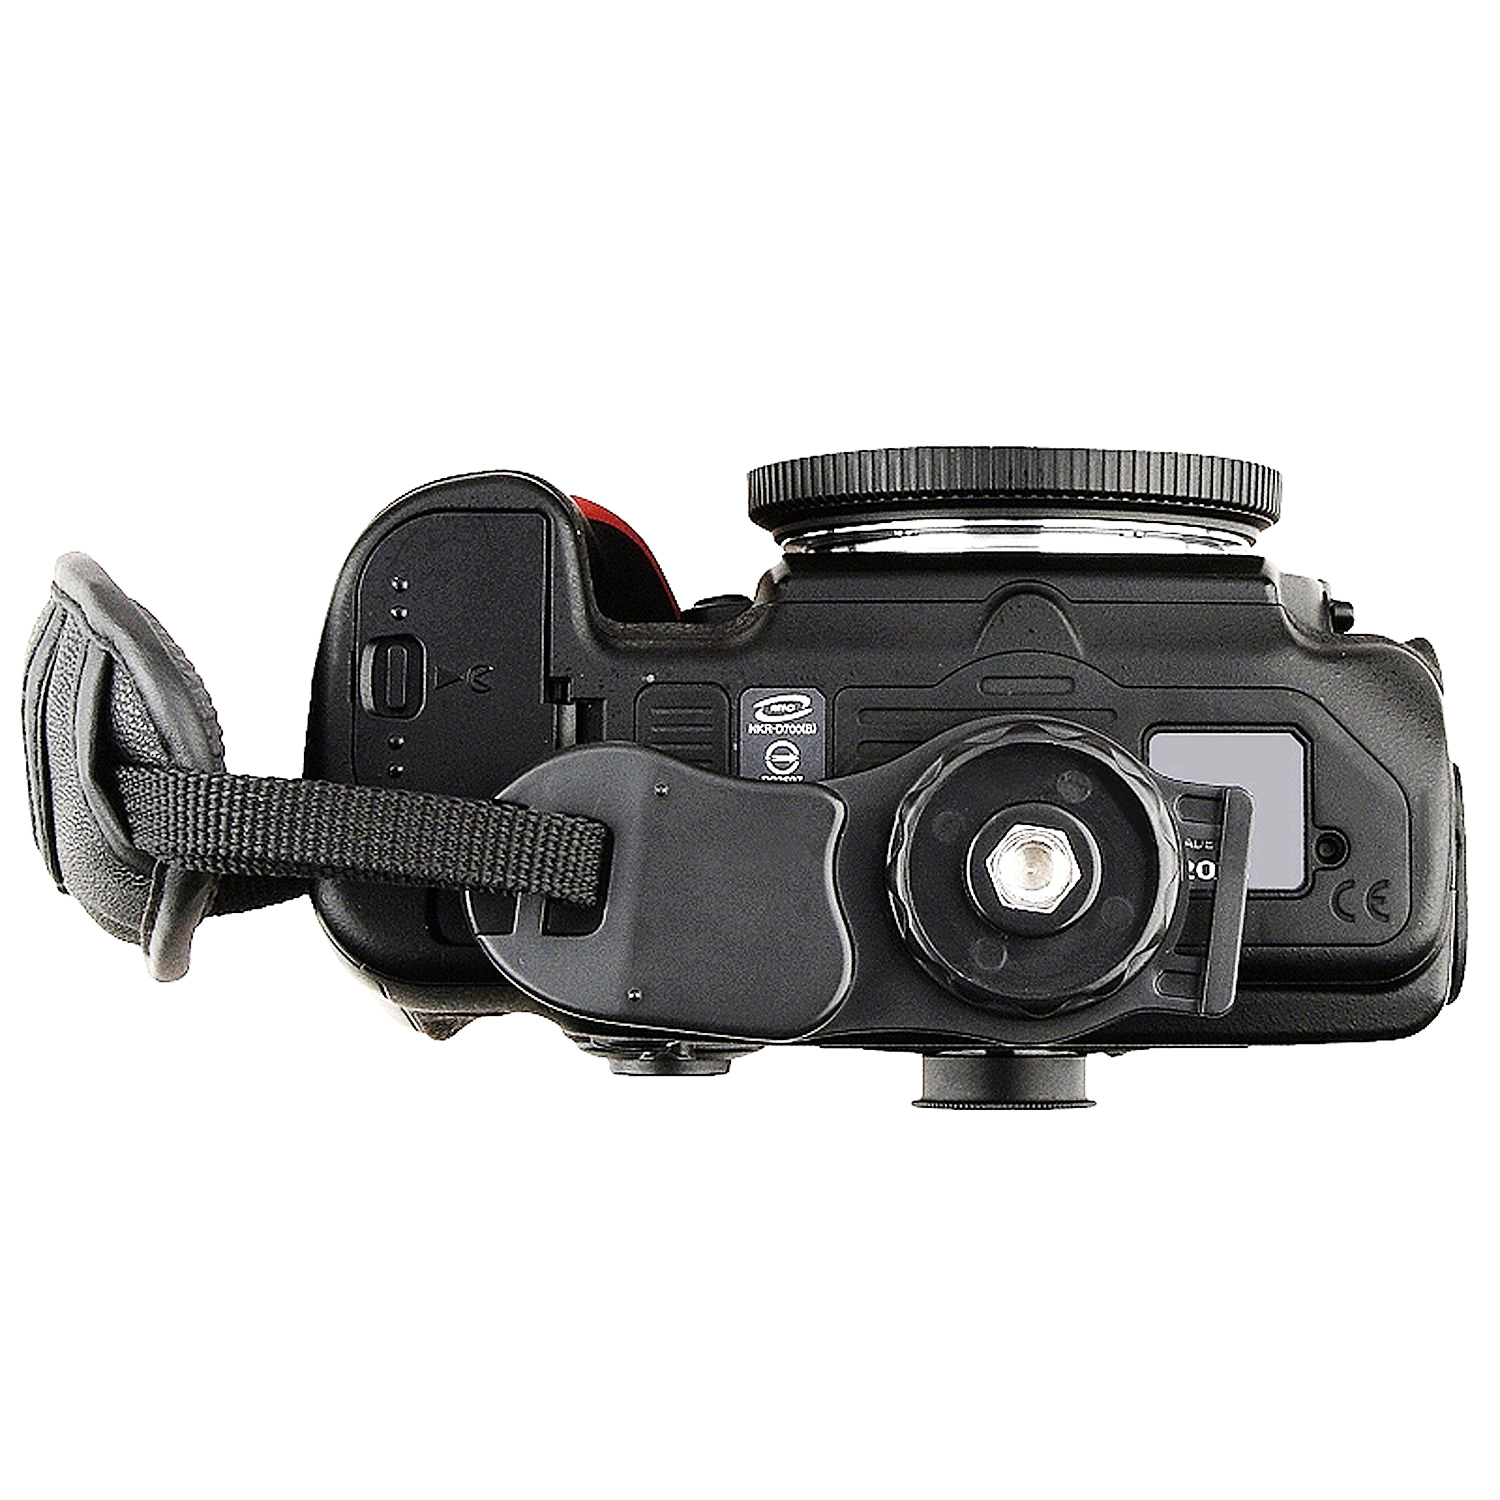 Lanyard Style Adjustable with Quick-Release. Nikon Coolpix S4300 Neck Strap